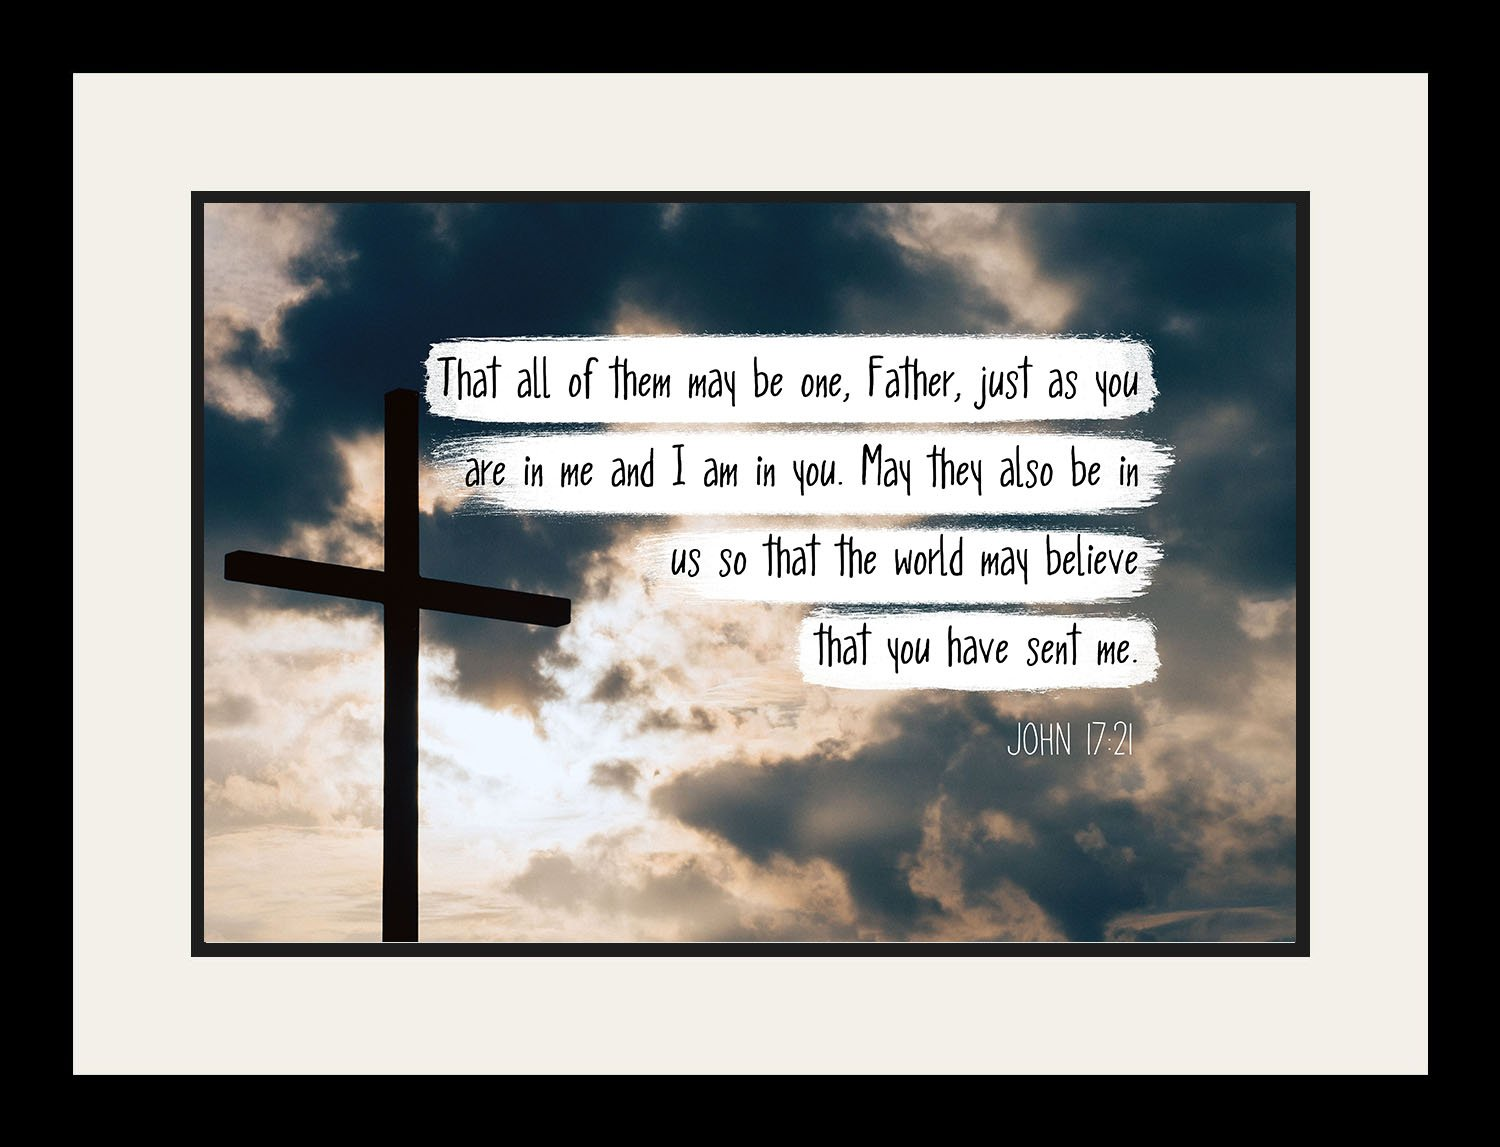 John 17:21 That all of them may be one, - Christian Poster, Print, Picture or Framed Wall Art Decor - Bible Verse Collection - Religious Gift for Holidays Christmas Baptism (19x25 Framed)